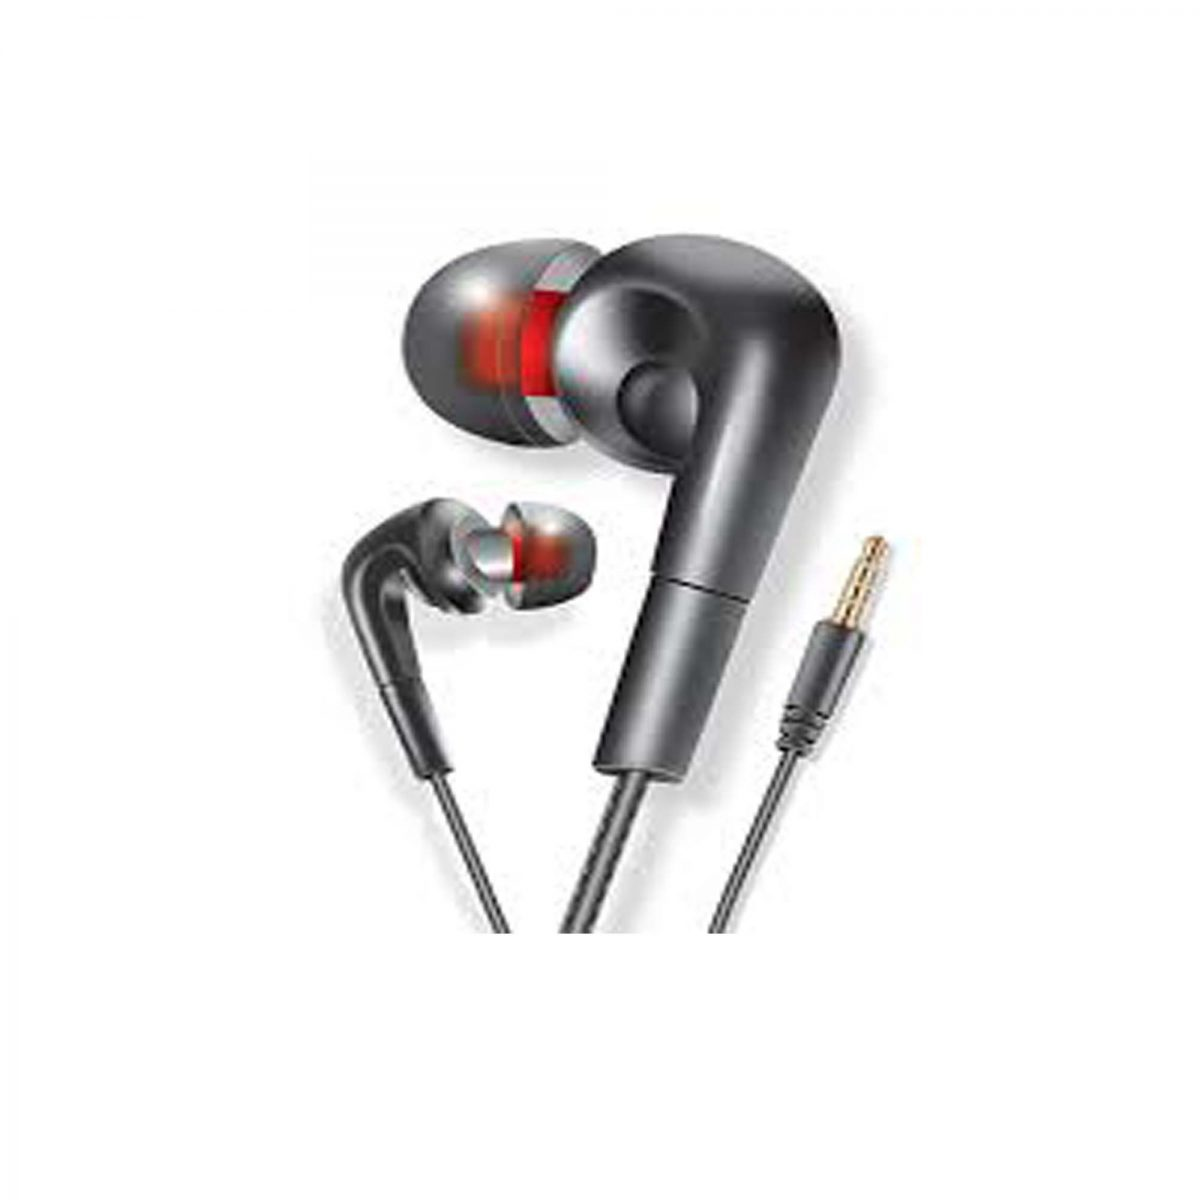 Audionic Black Universal Earphone With Extra Bass D 10 Itwarbazar Pk